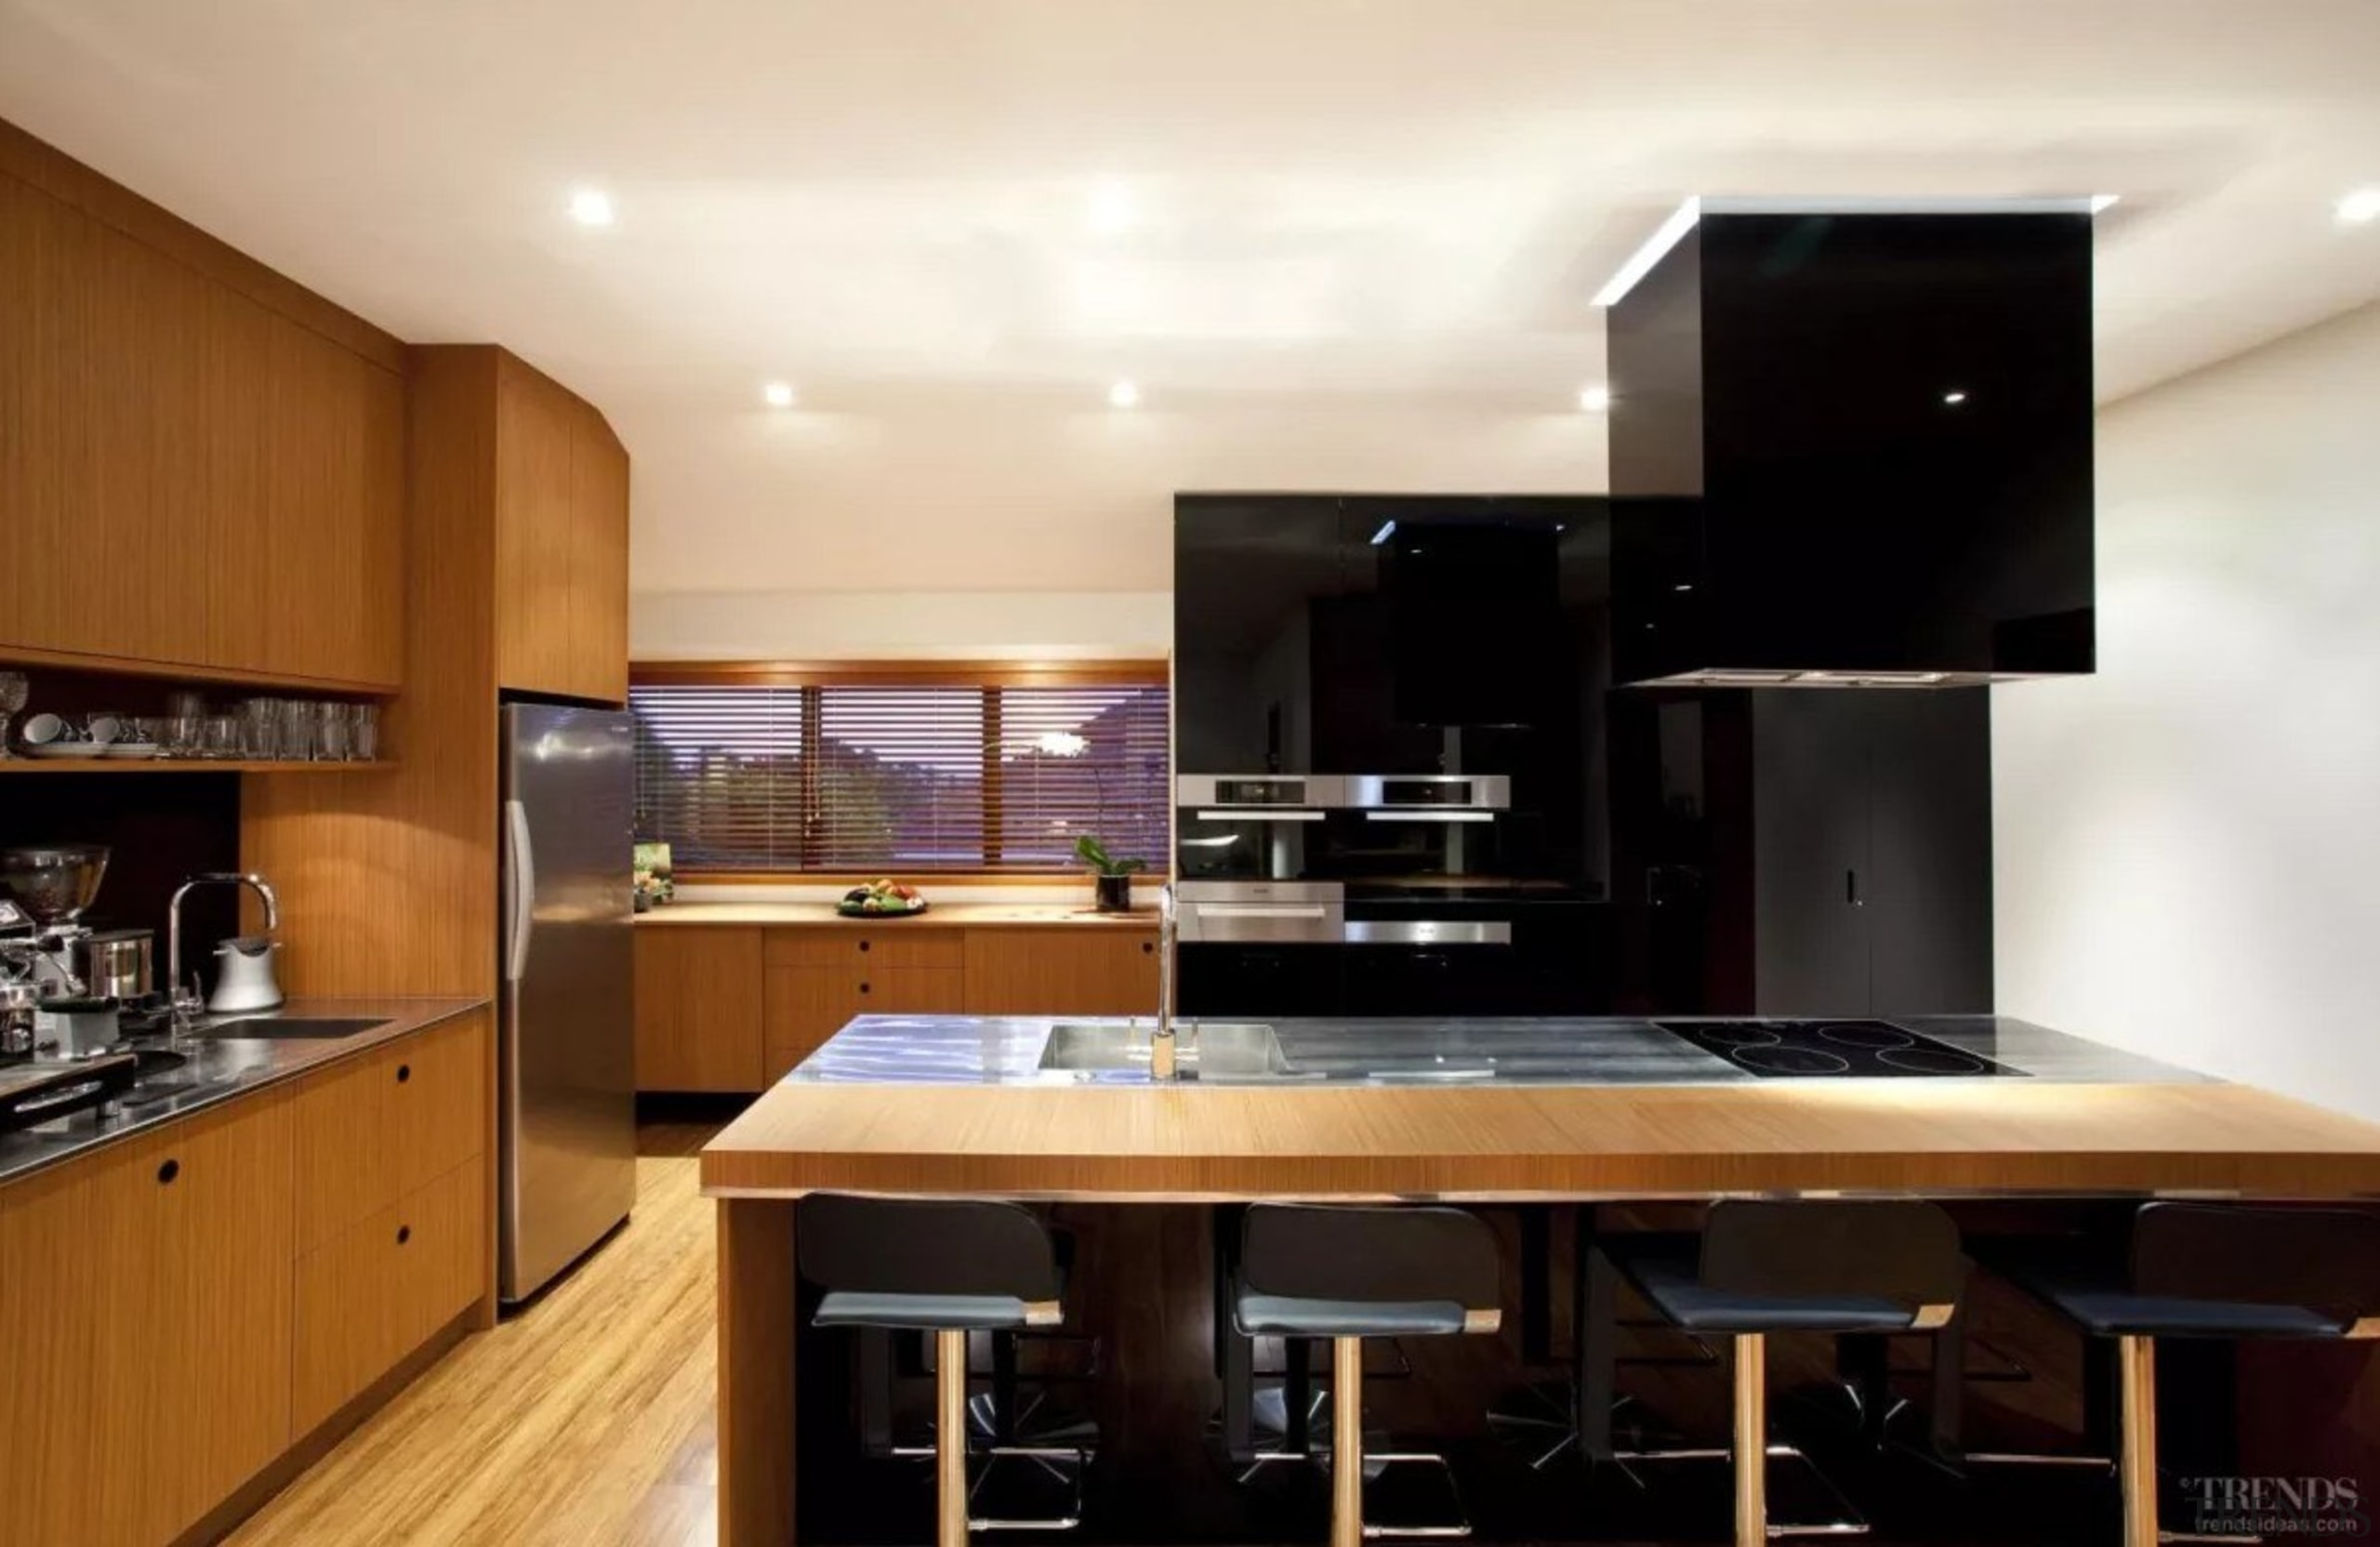 De03D Screen Shot 2017 07 25 At 115742 cabinetry, ceiling, countertop, cuisine classique, interior design, kitchen, property, real estate, black, white